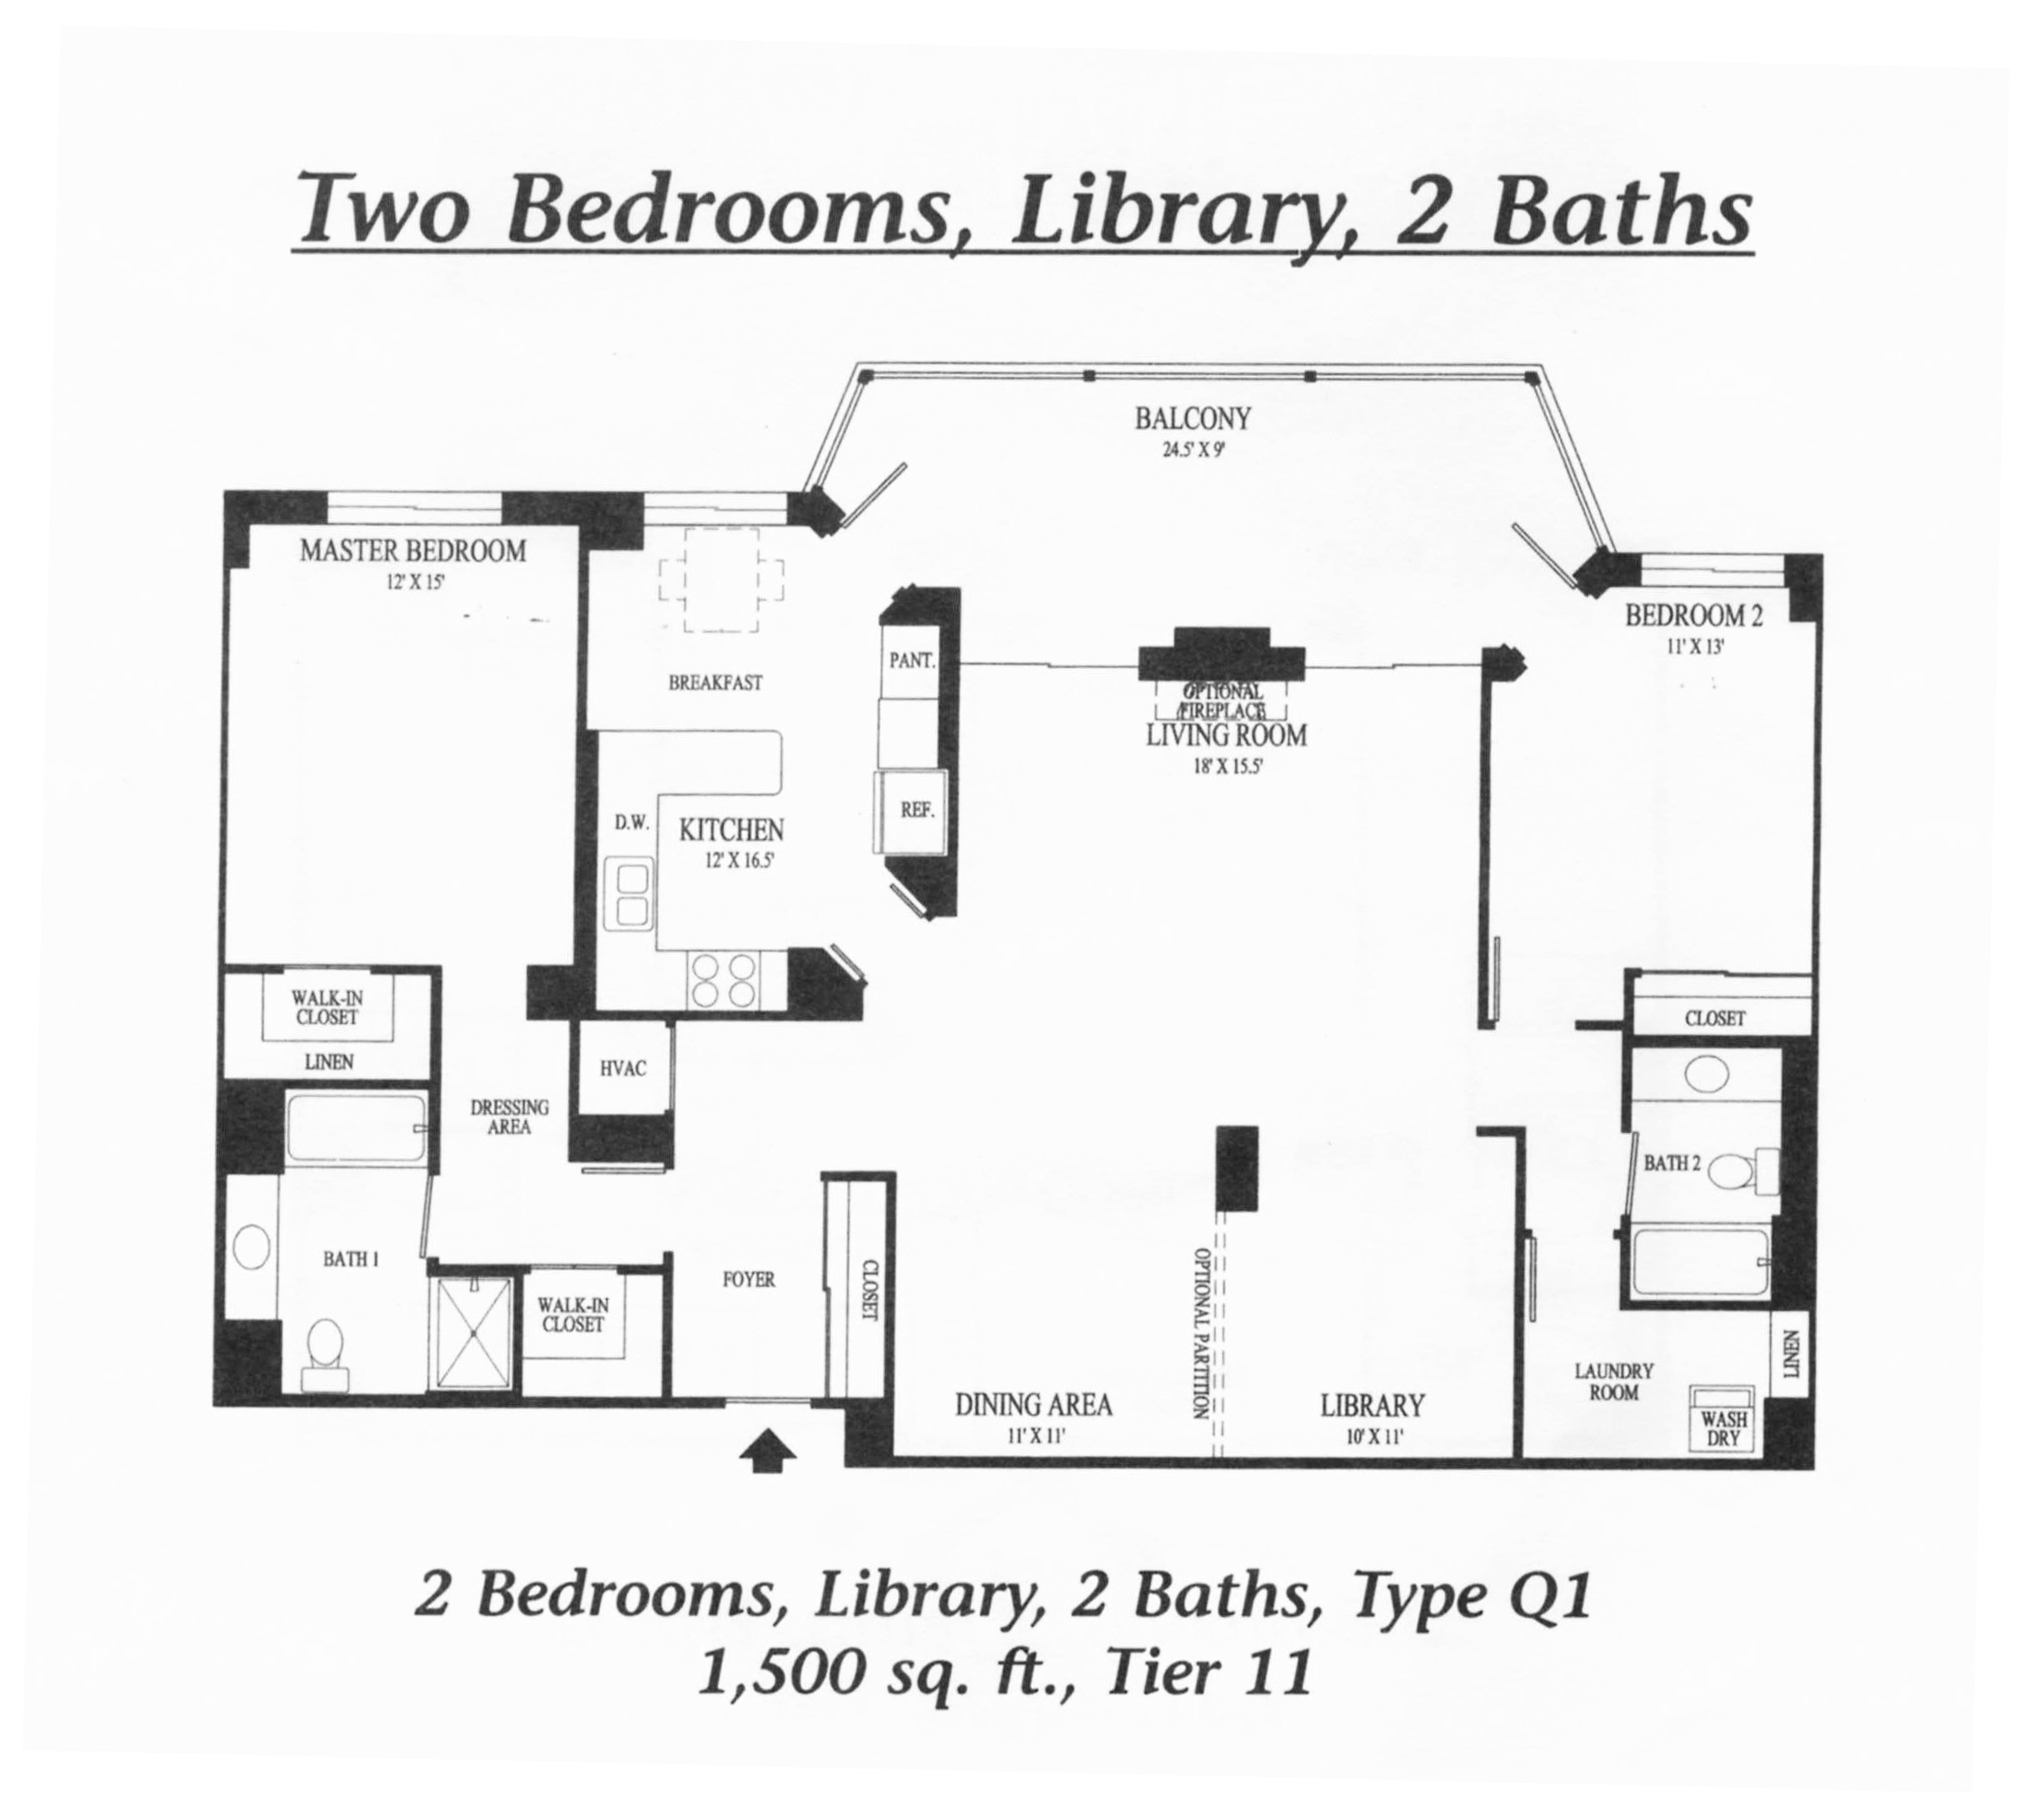 19355 Cypress Ridge Ter #911_ Lansdowne Woods_ Q 1 Floorplan